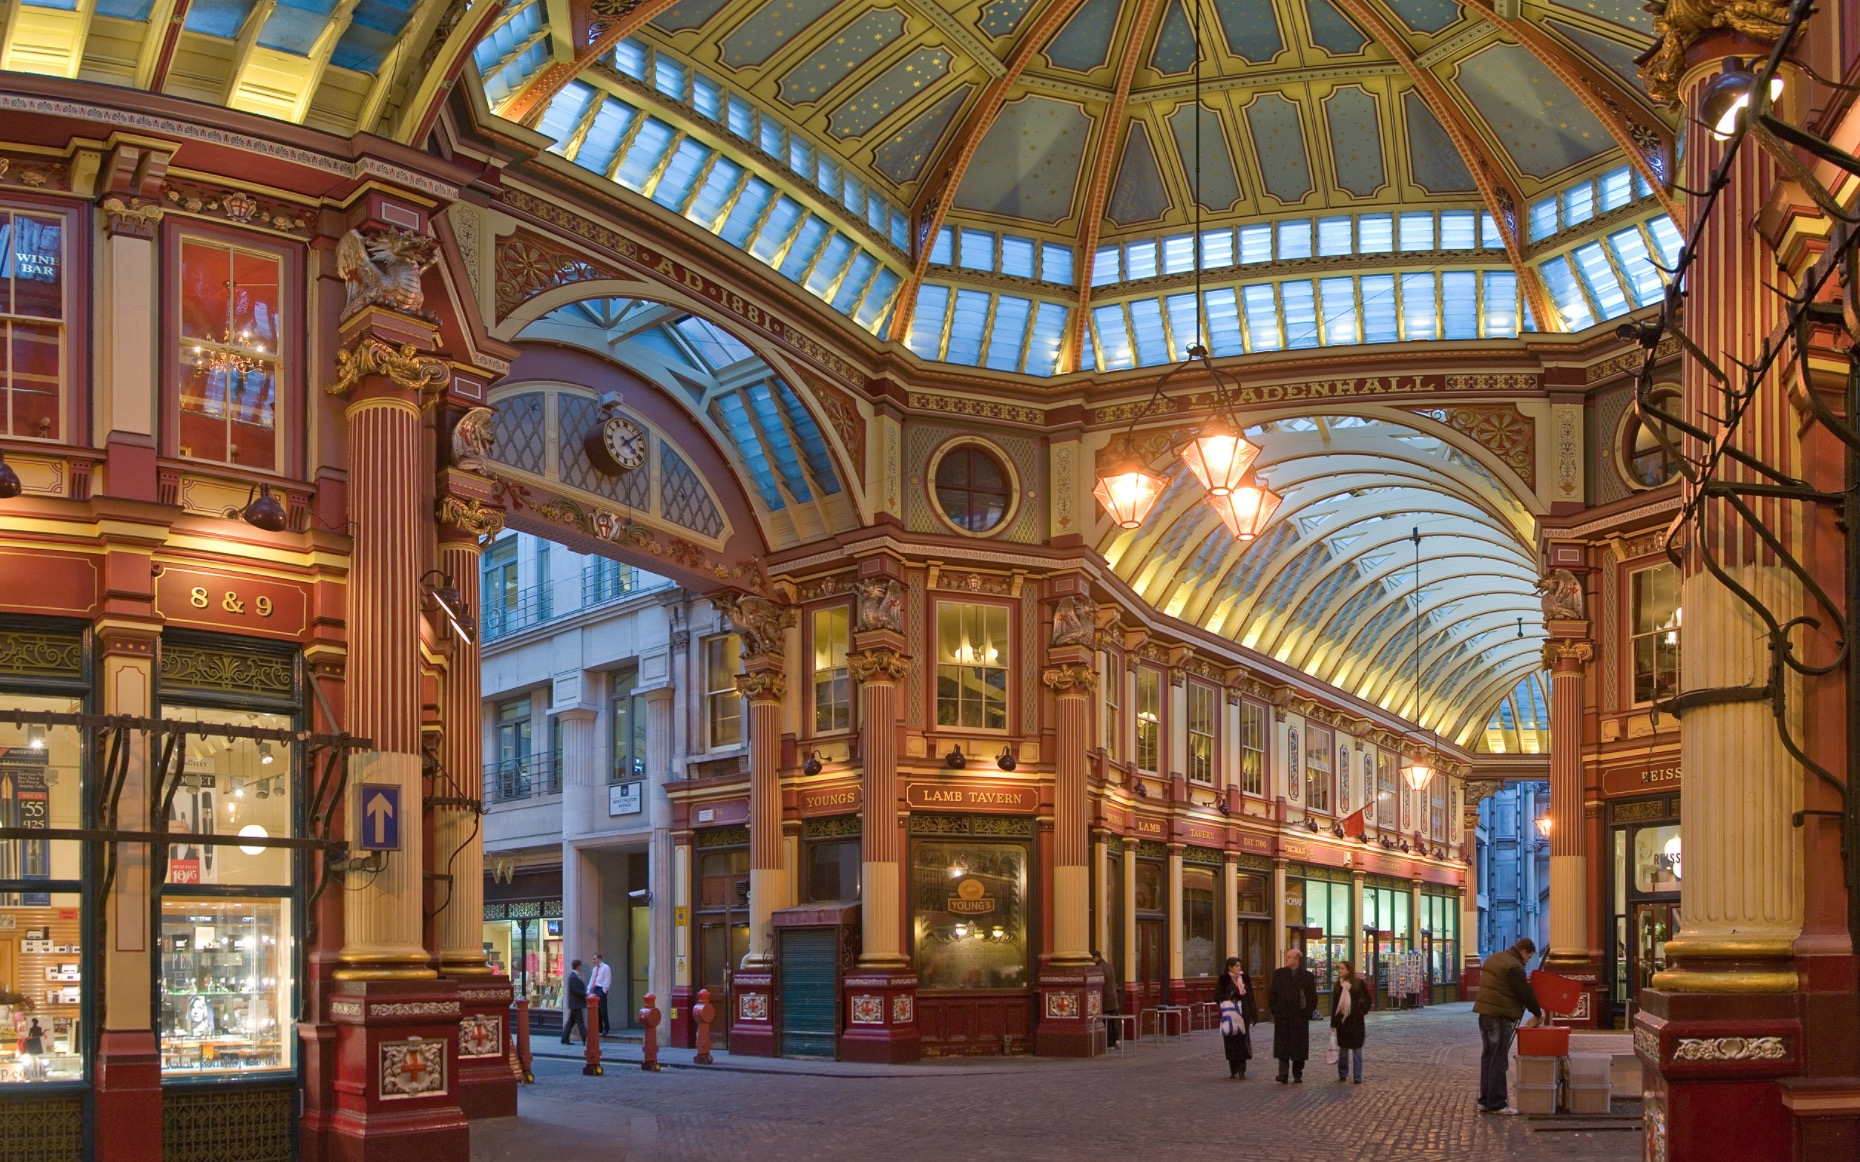 Leadenhall Market (London England)